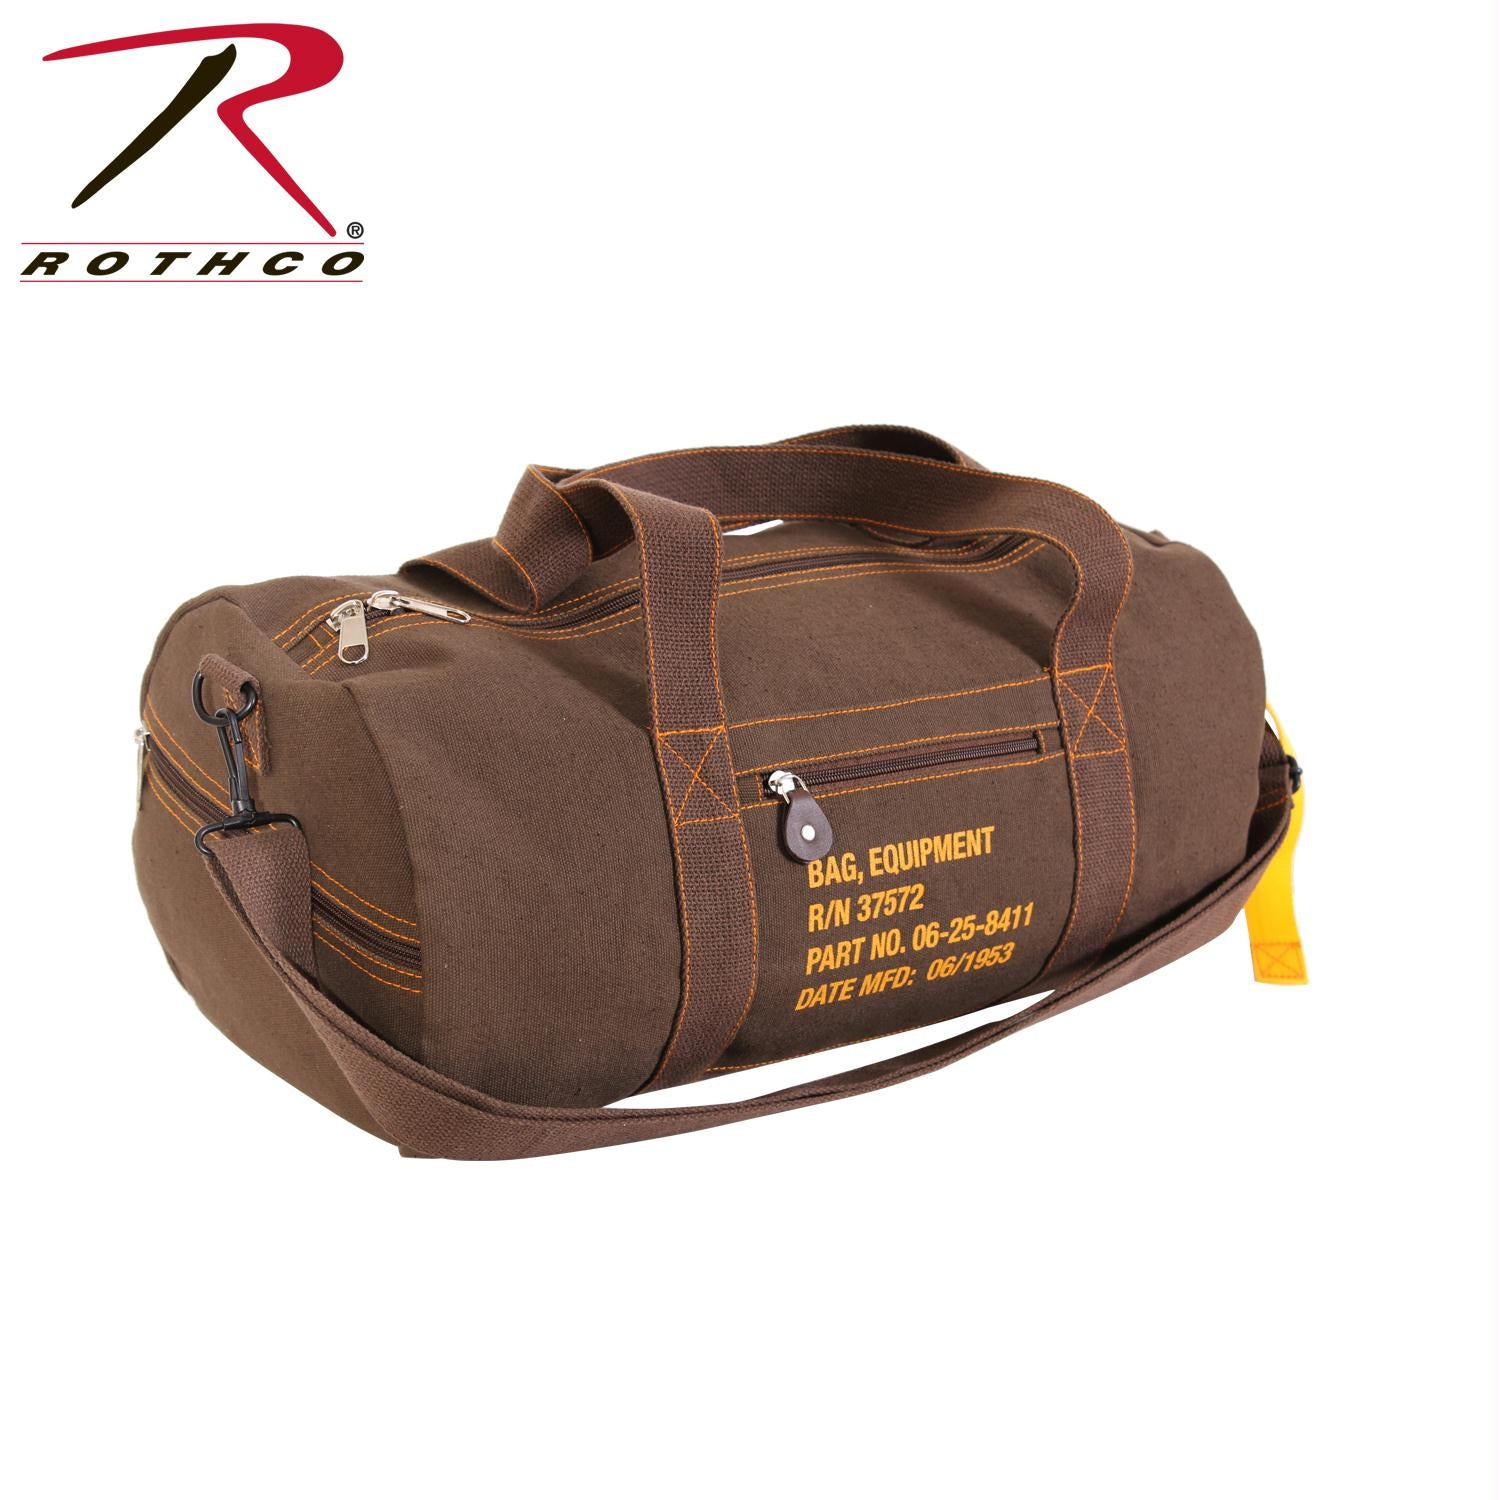 Rothco Canvas Equipment Bag